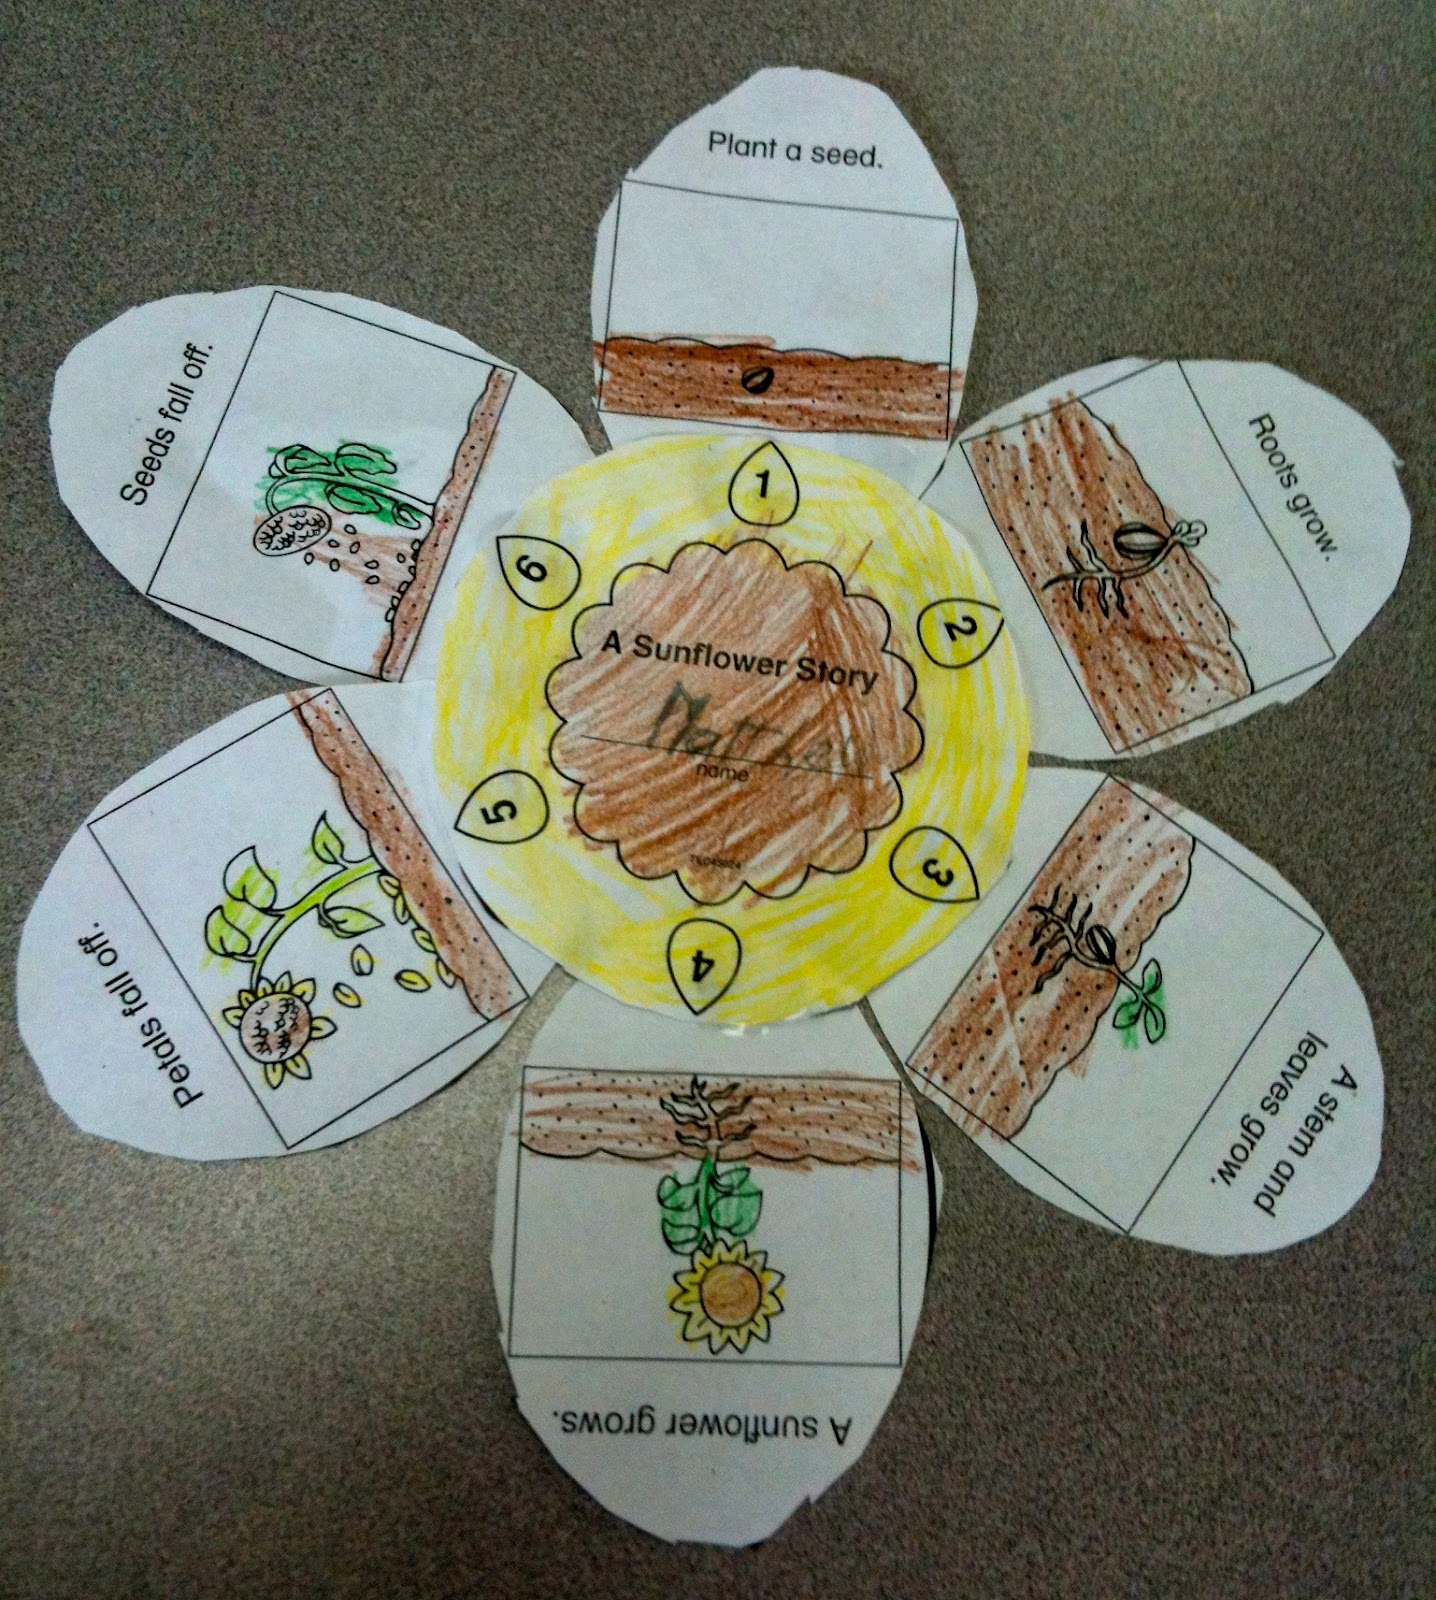 sunflower plant life cycle diagram of whitetail deer skull kindergarten superkids april 2012